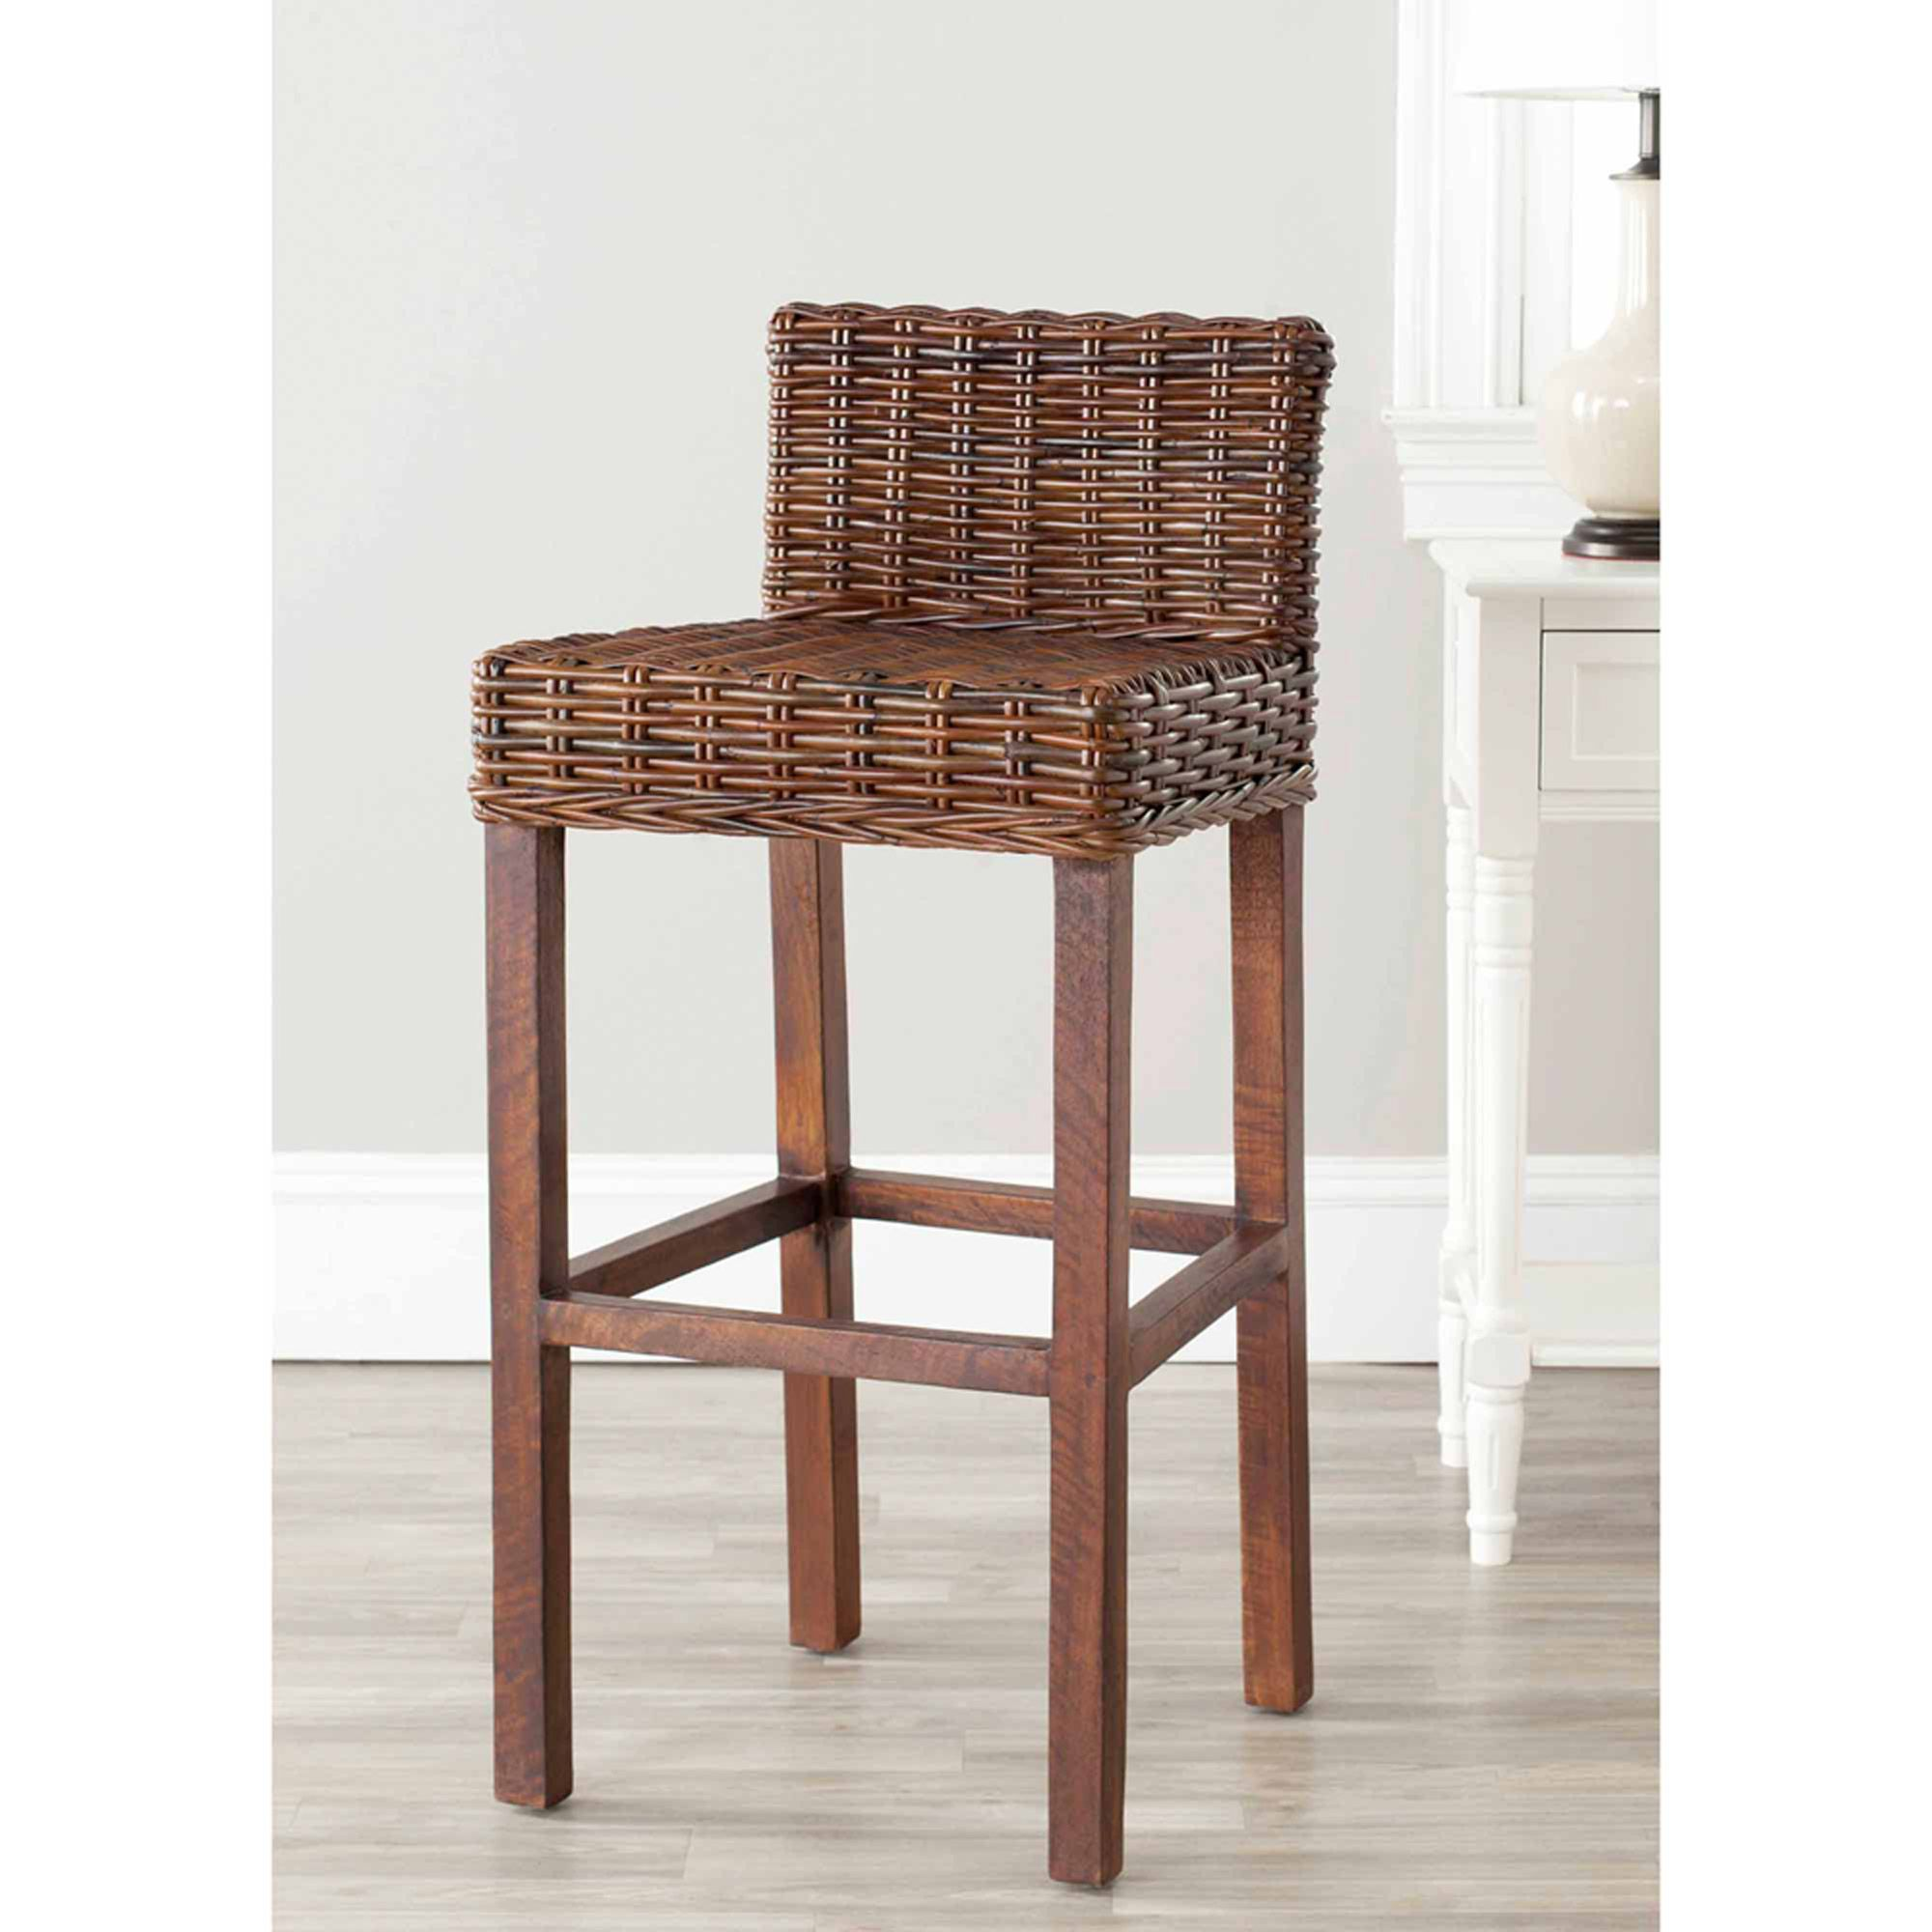 Free 2 Day Shipping Buy Safavieh Cypress Bar Stool At Walmart Com Wicker Bar Stools Brown Bar Stools Bar Stools